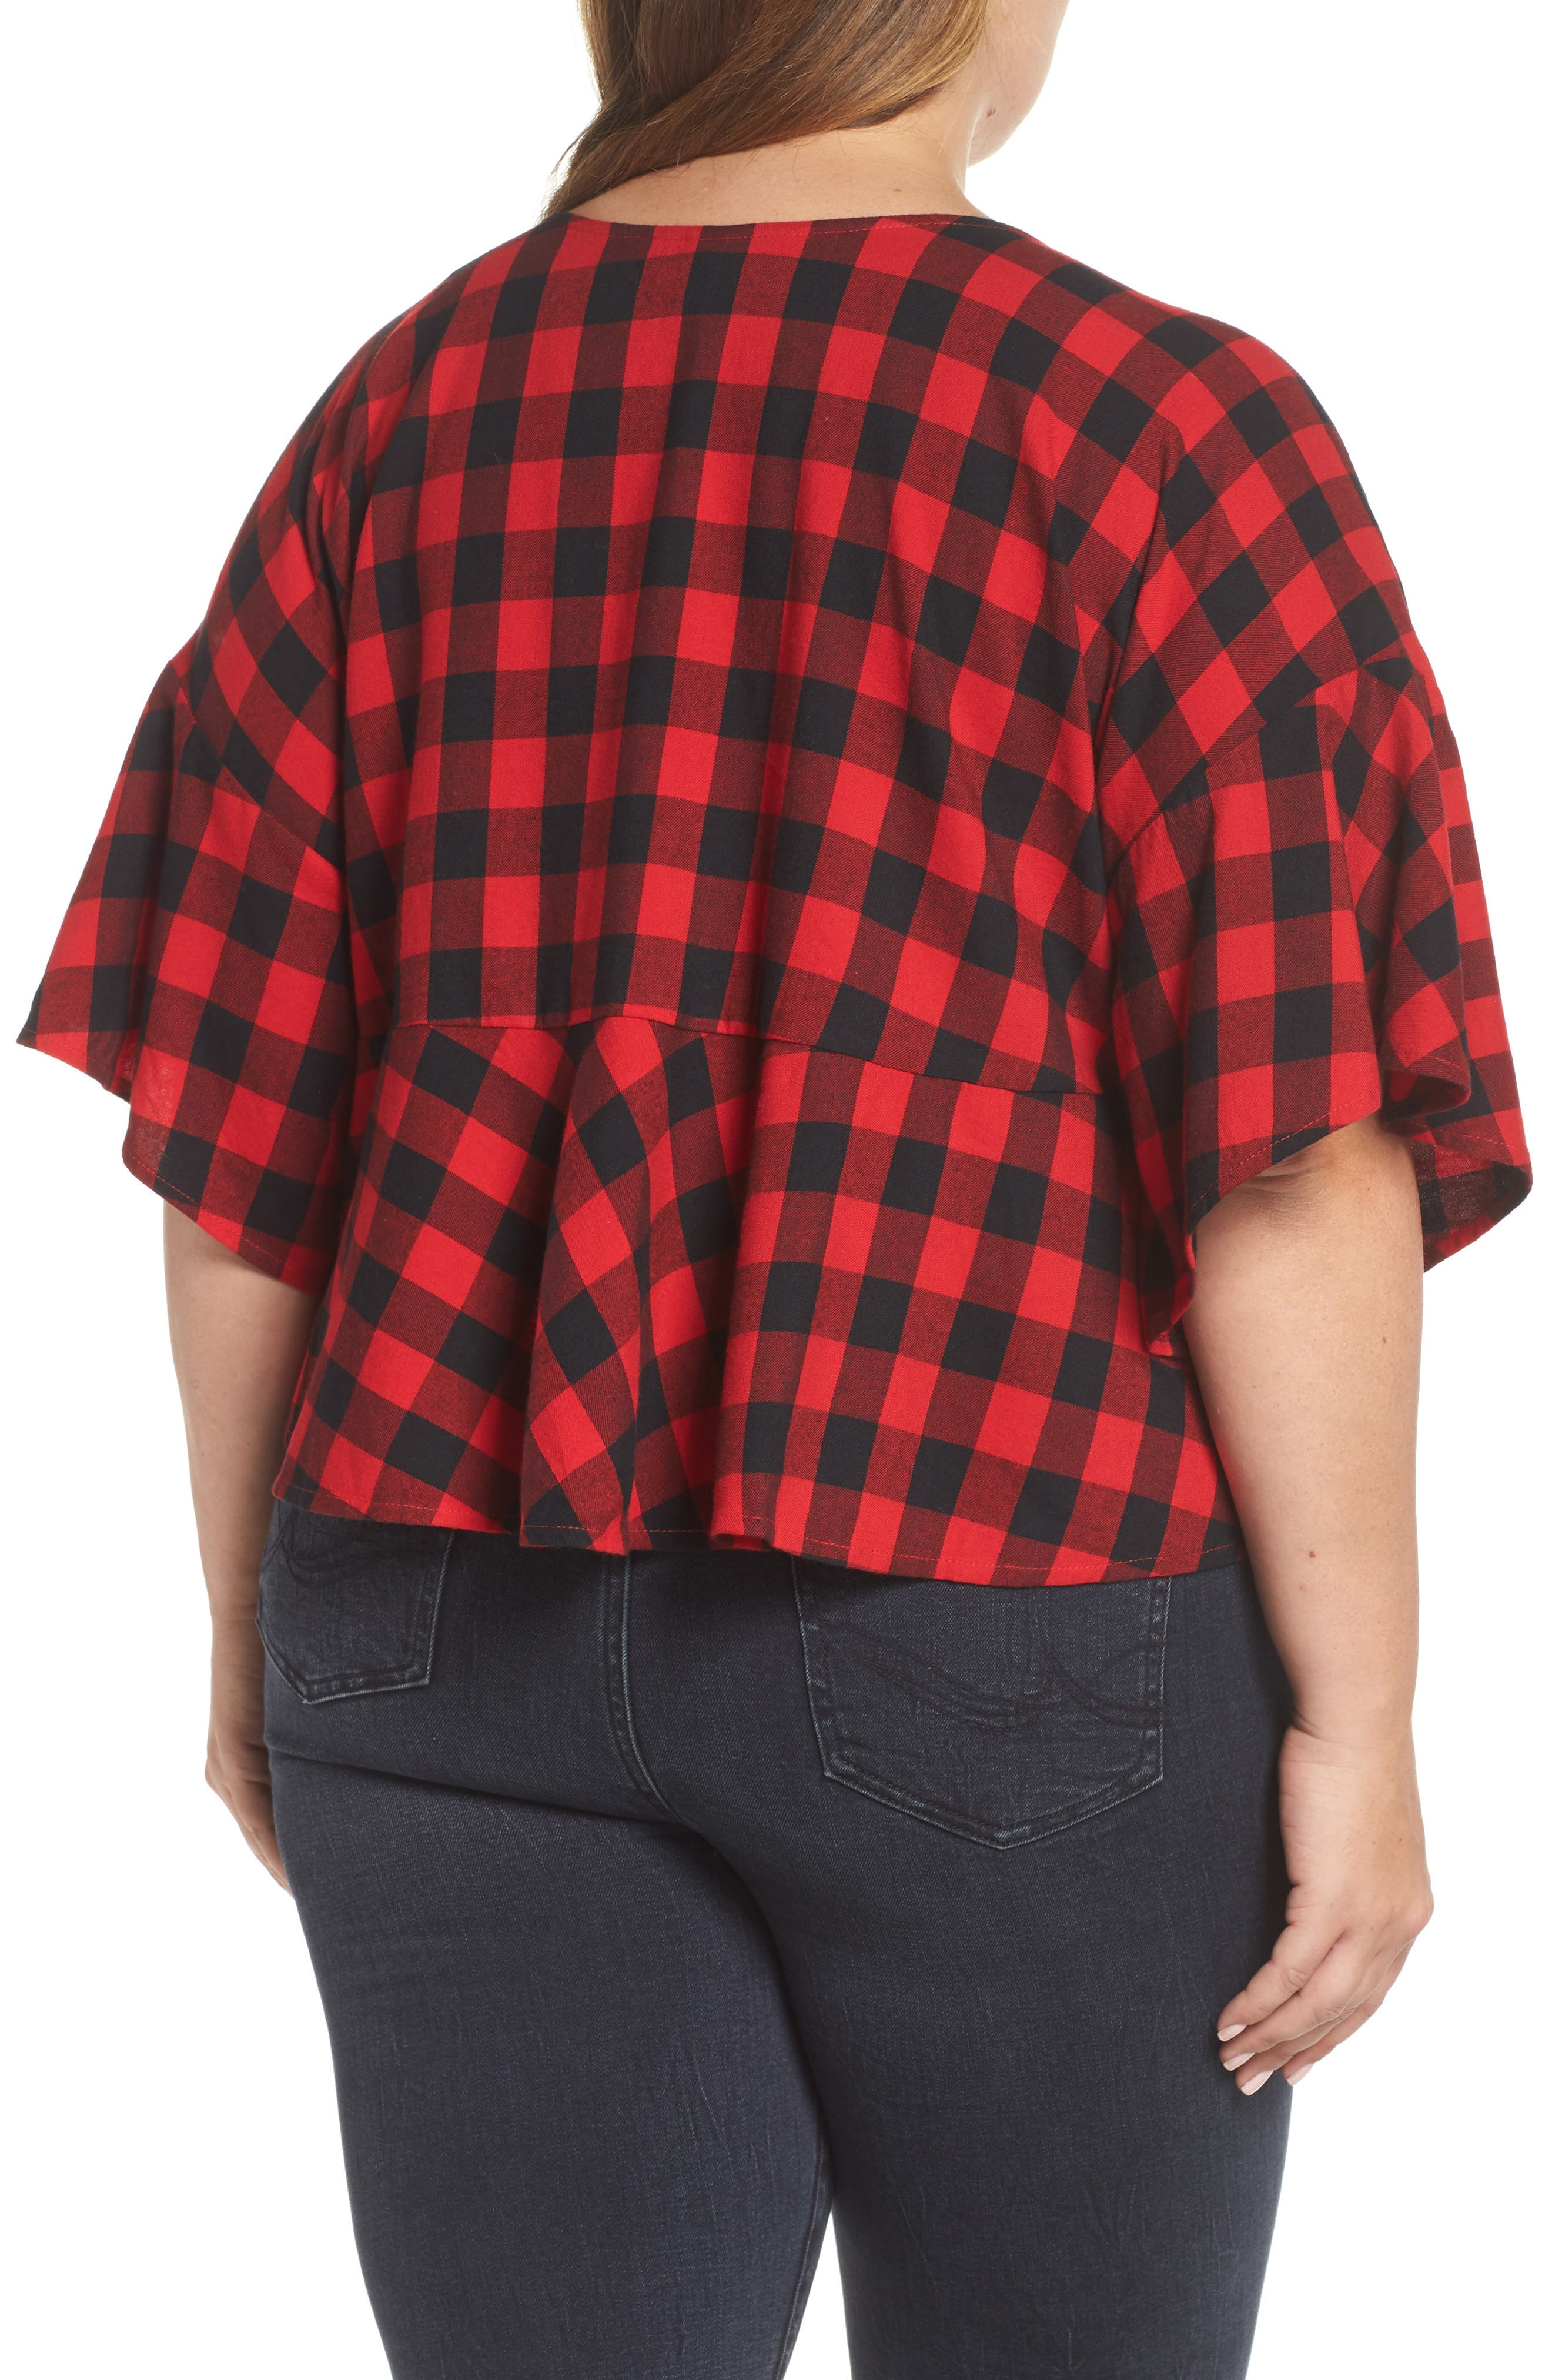 Plaid Peplum Top,                             Alternate thumbnail 2, color,                             RED CHINOISE DARCY CHECK